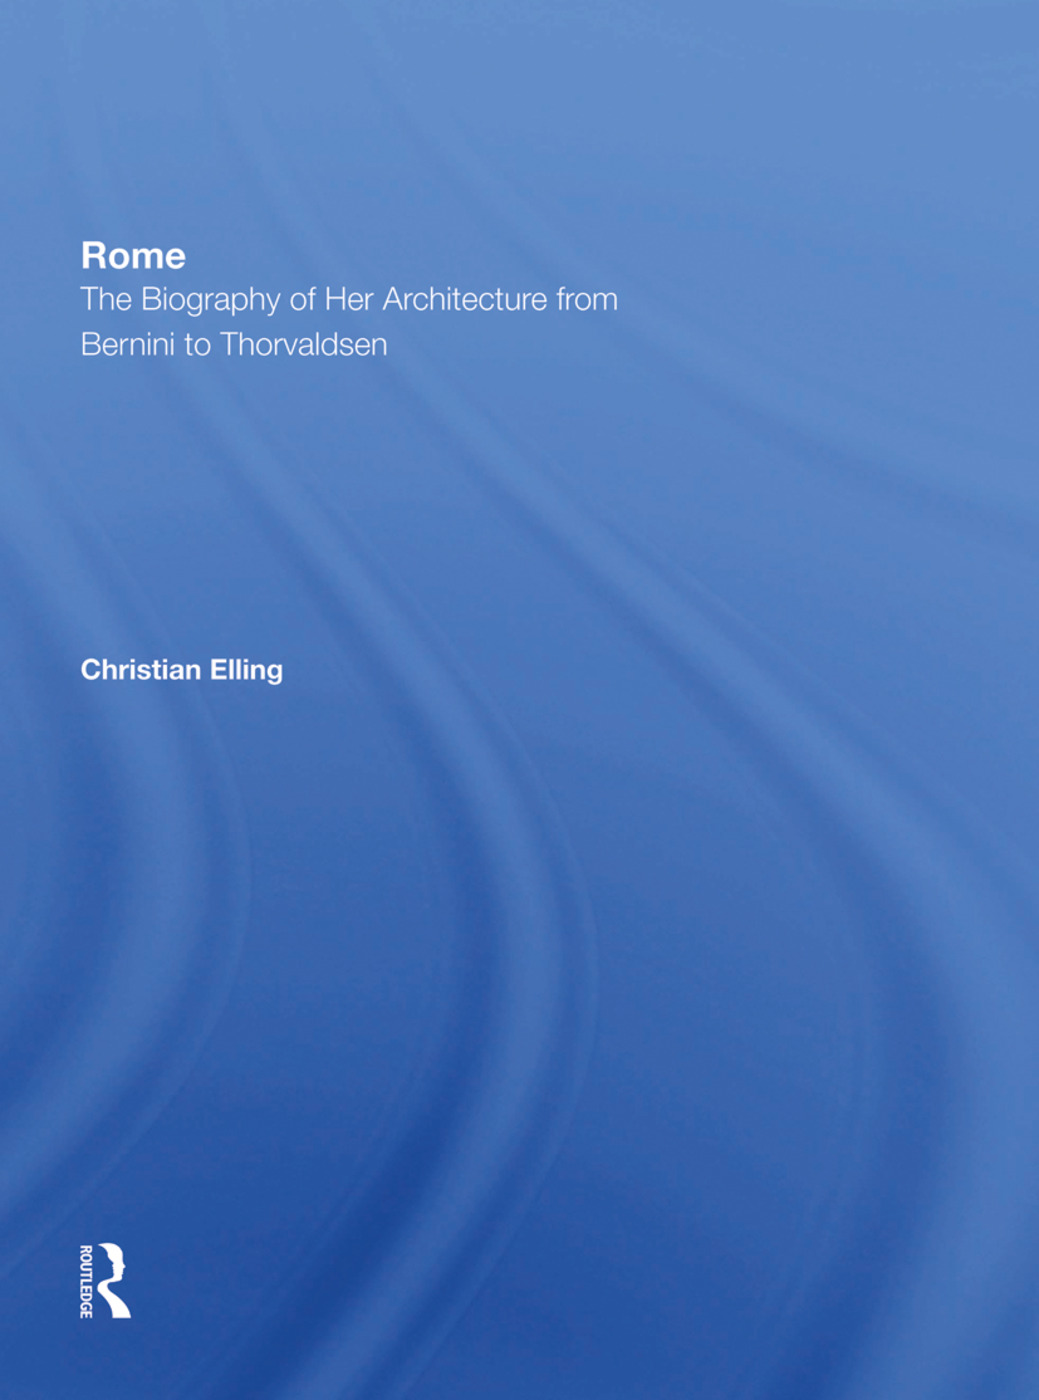 Rome: The Biography of Her Architecture From Bernini to Thorvaldsen book cover